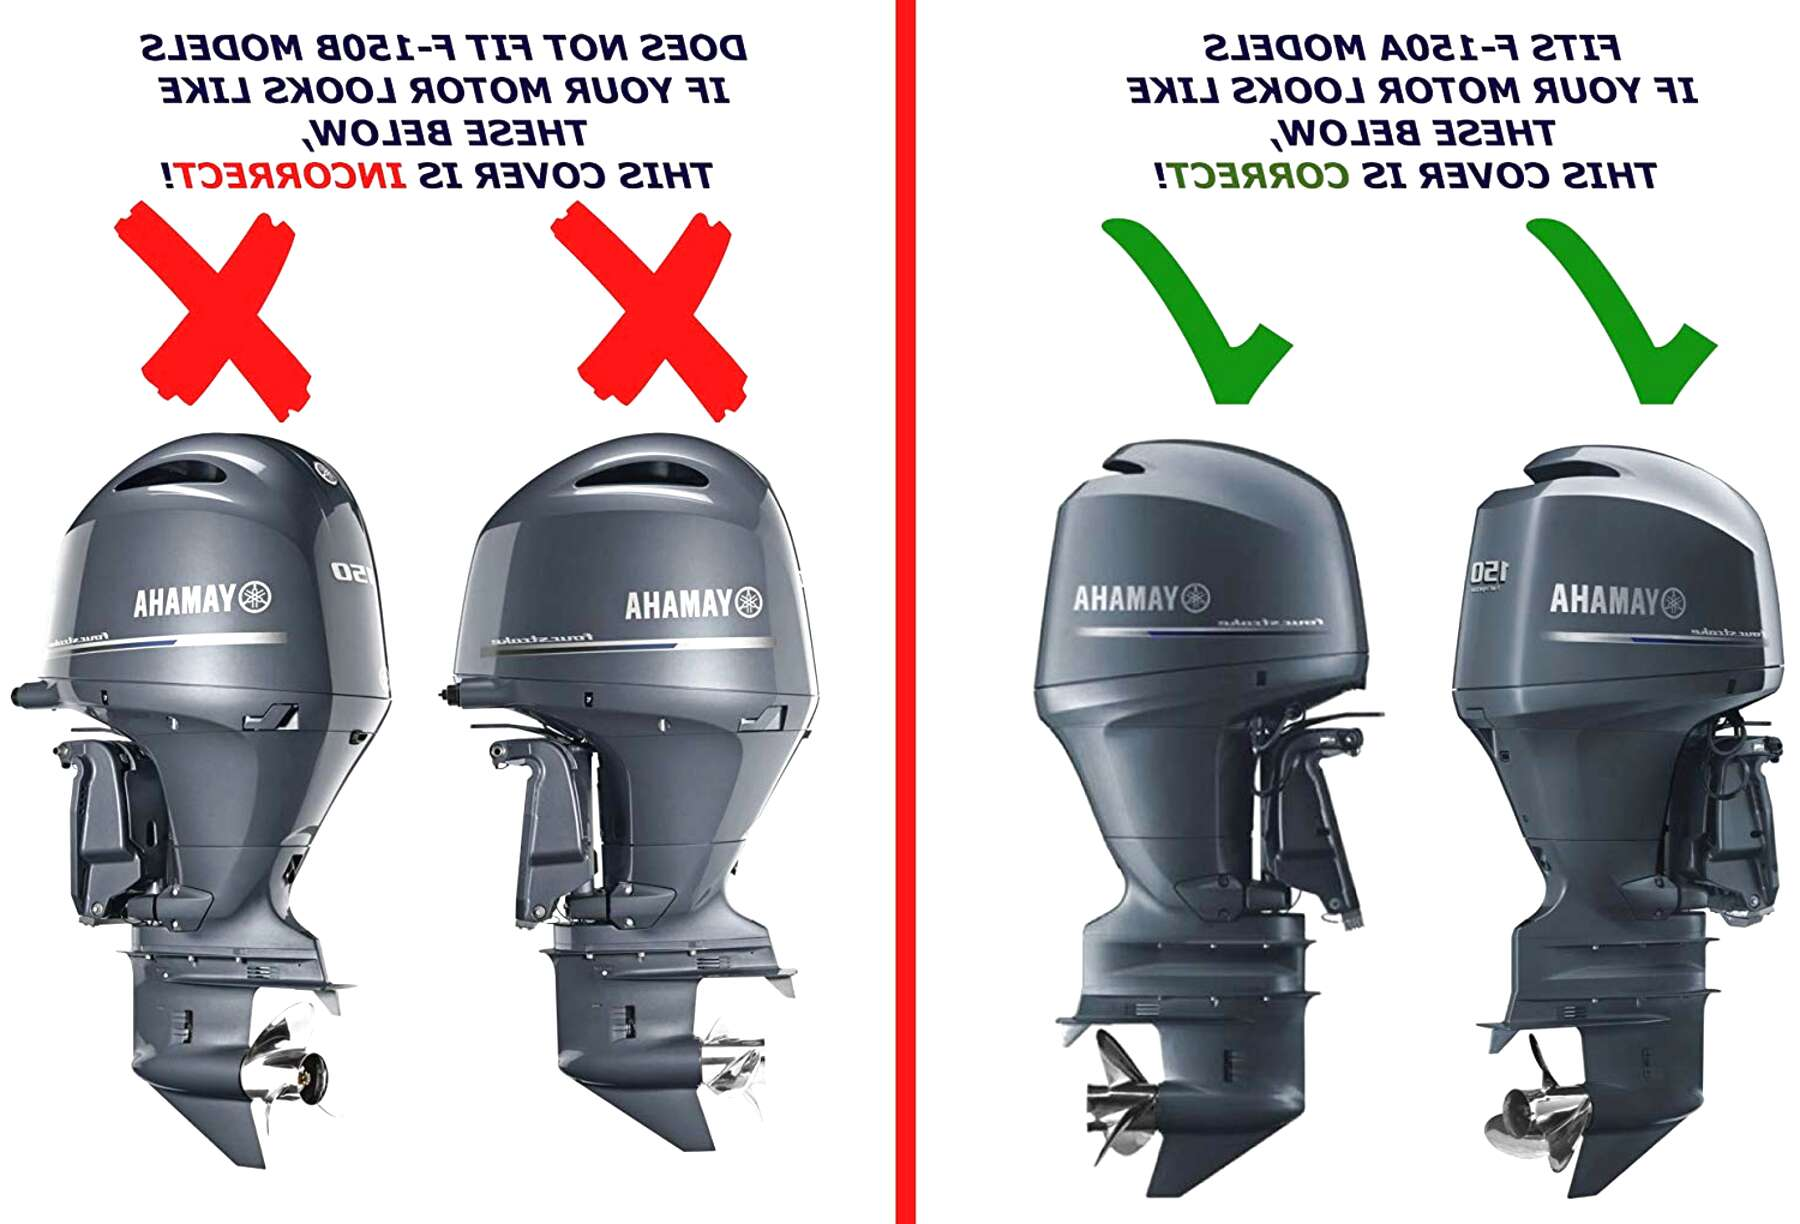 Yamaha Outboard Motor for sale compared to CraigsList ...